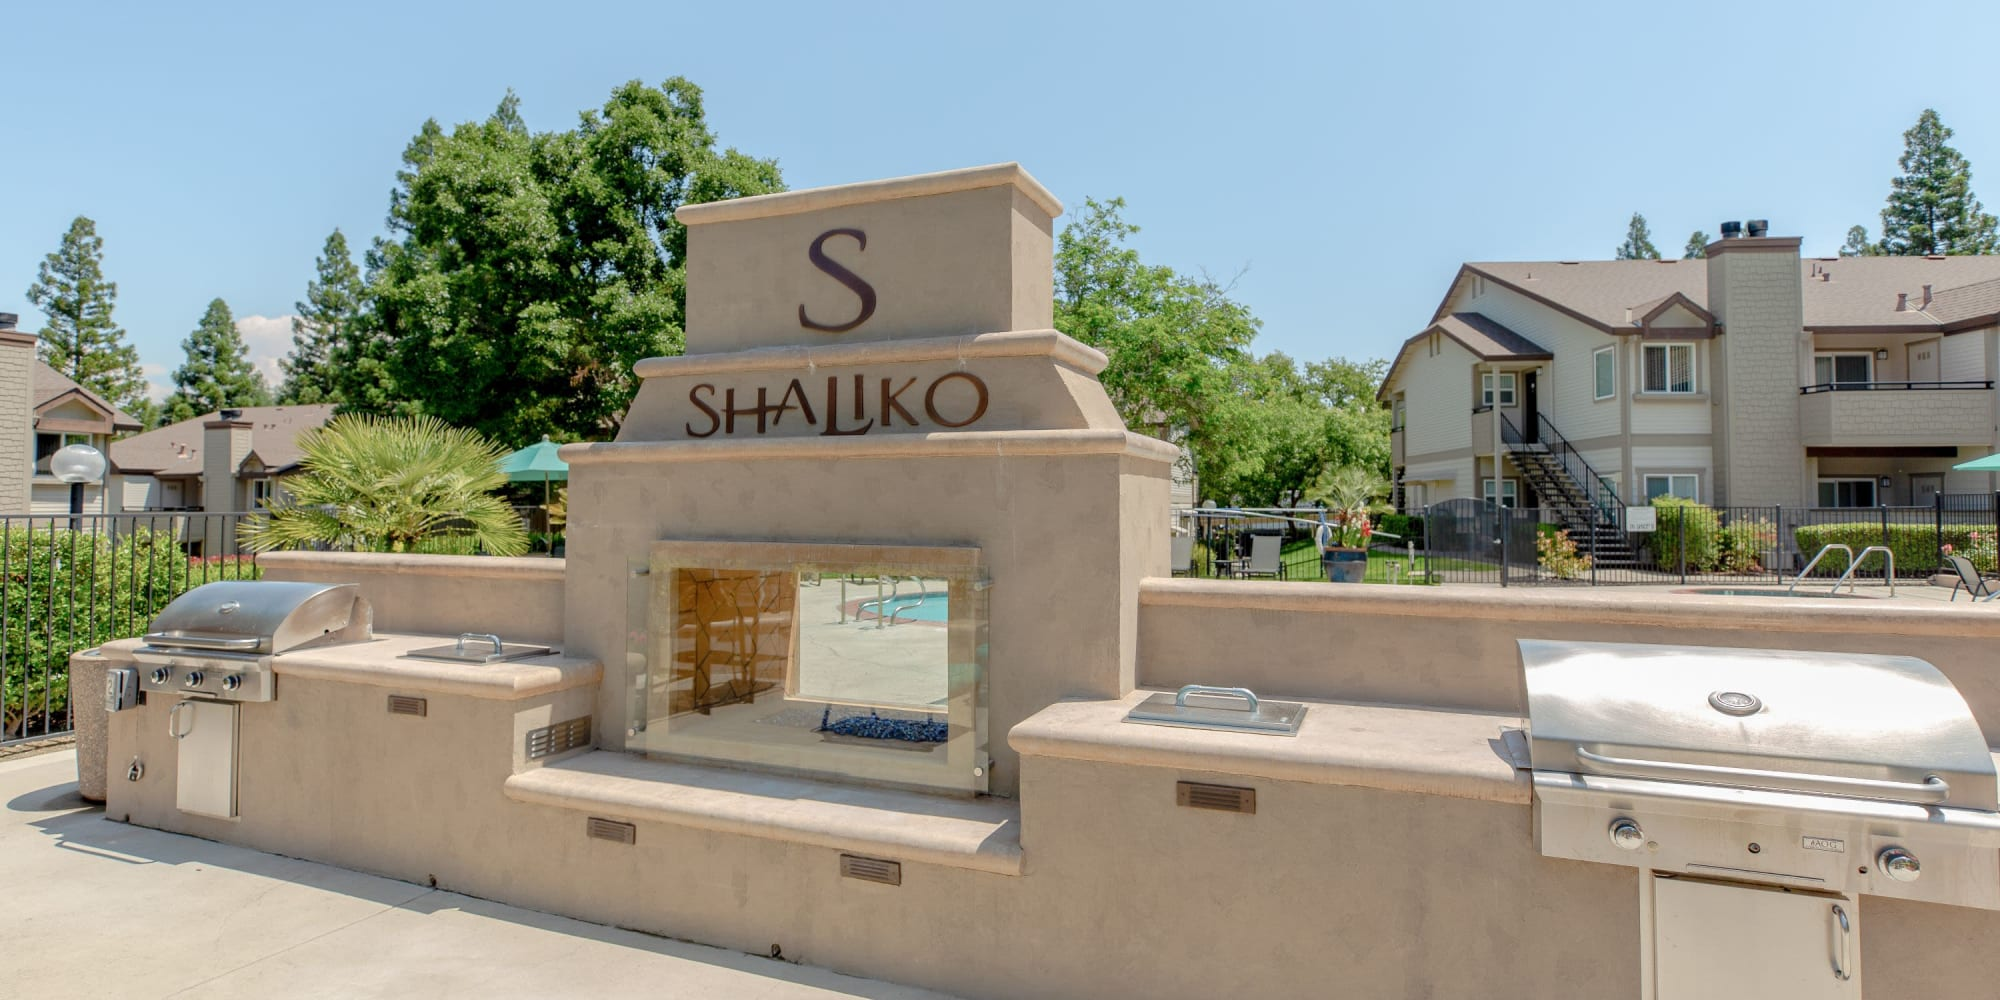 Apartments at Shaliko in Rocklin, California